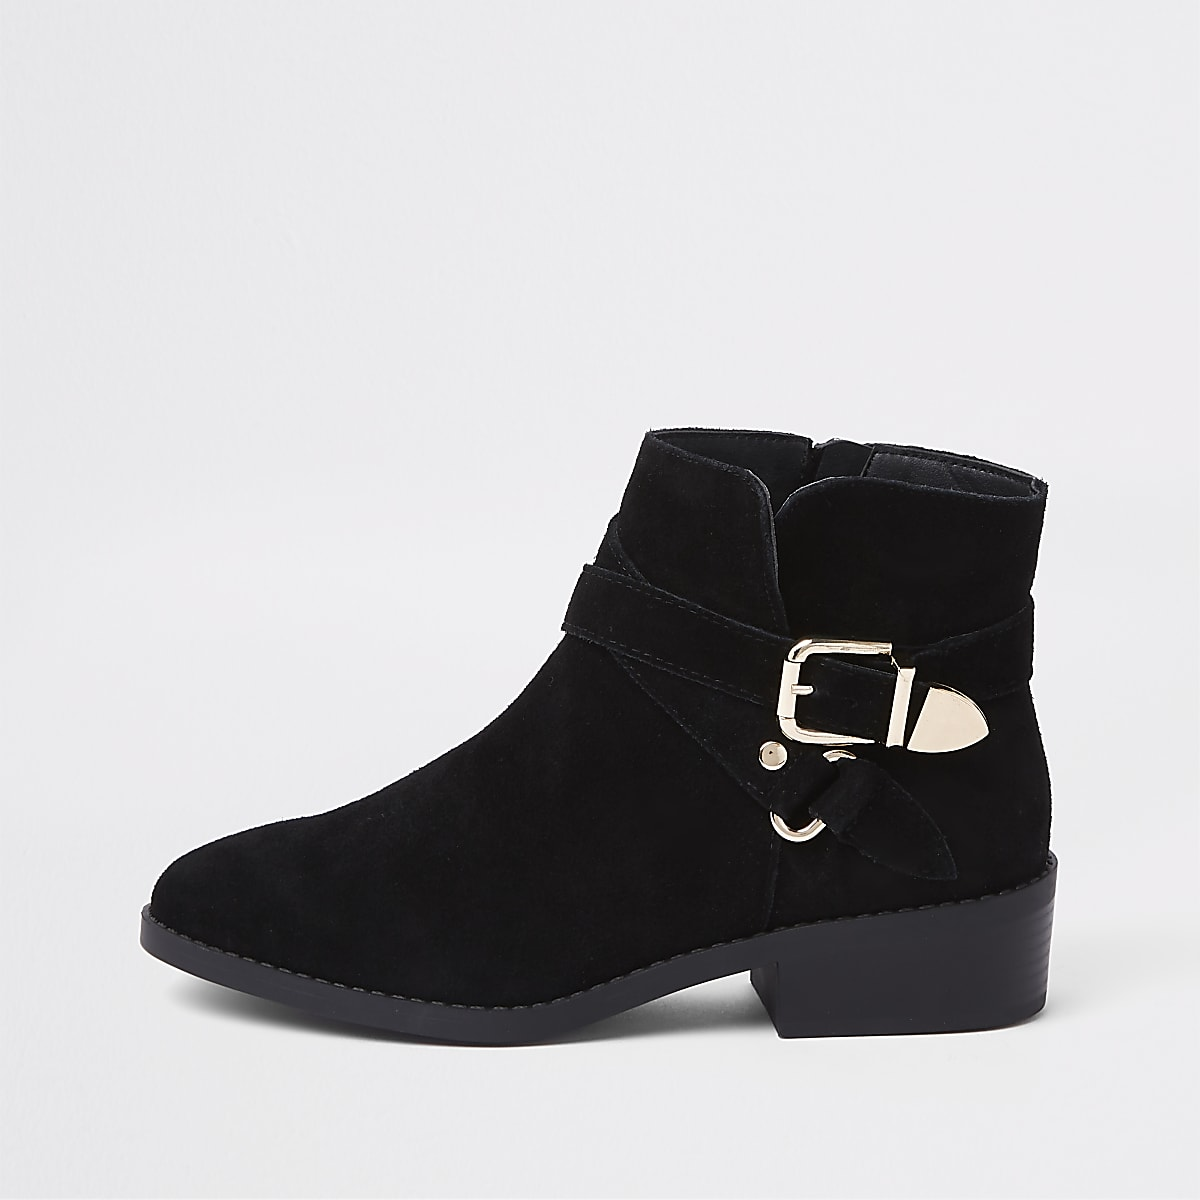 5e6d605822a Black wide fit suede buckle ankle boots - Boots - Shoes   Boots - women